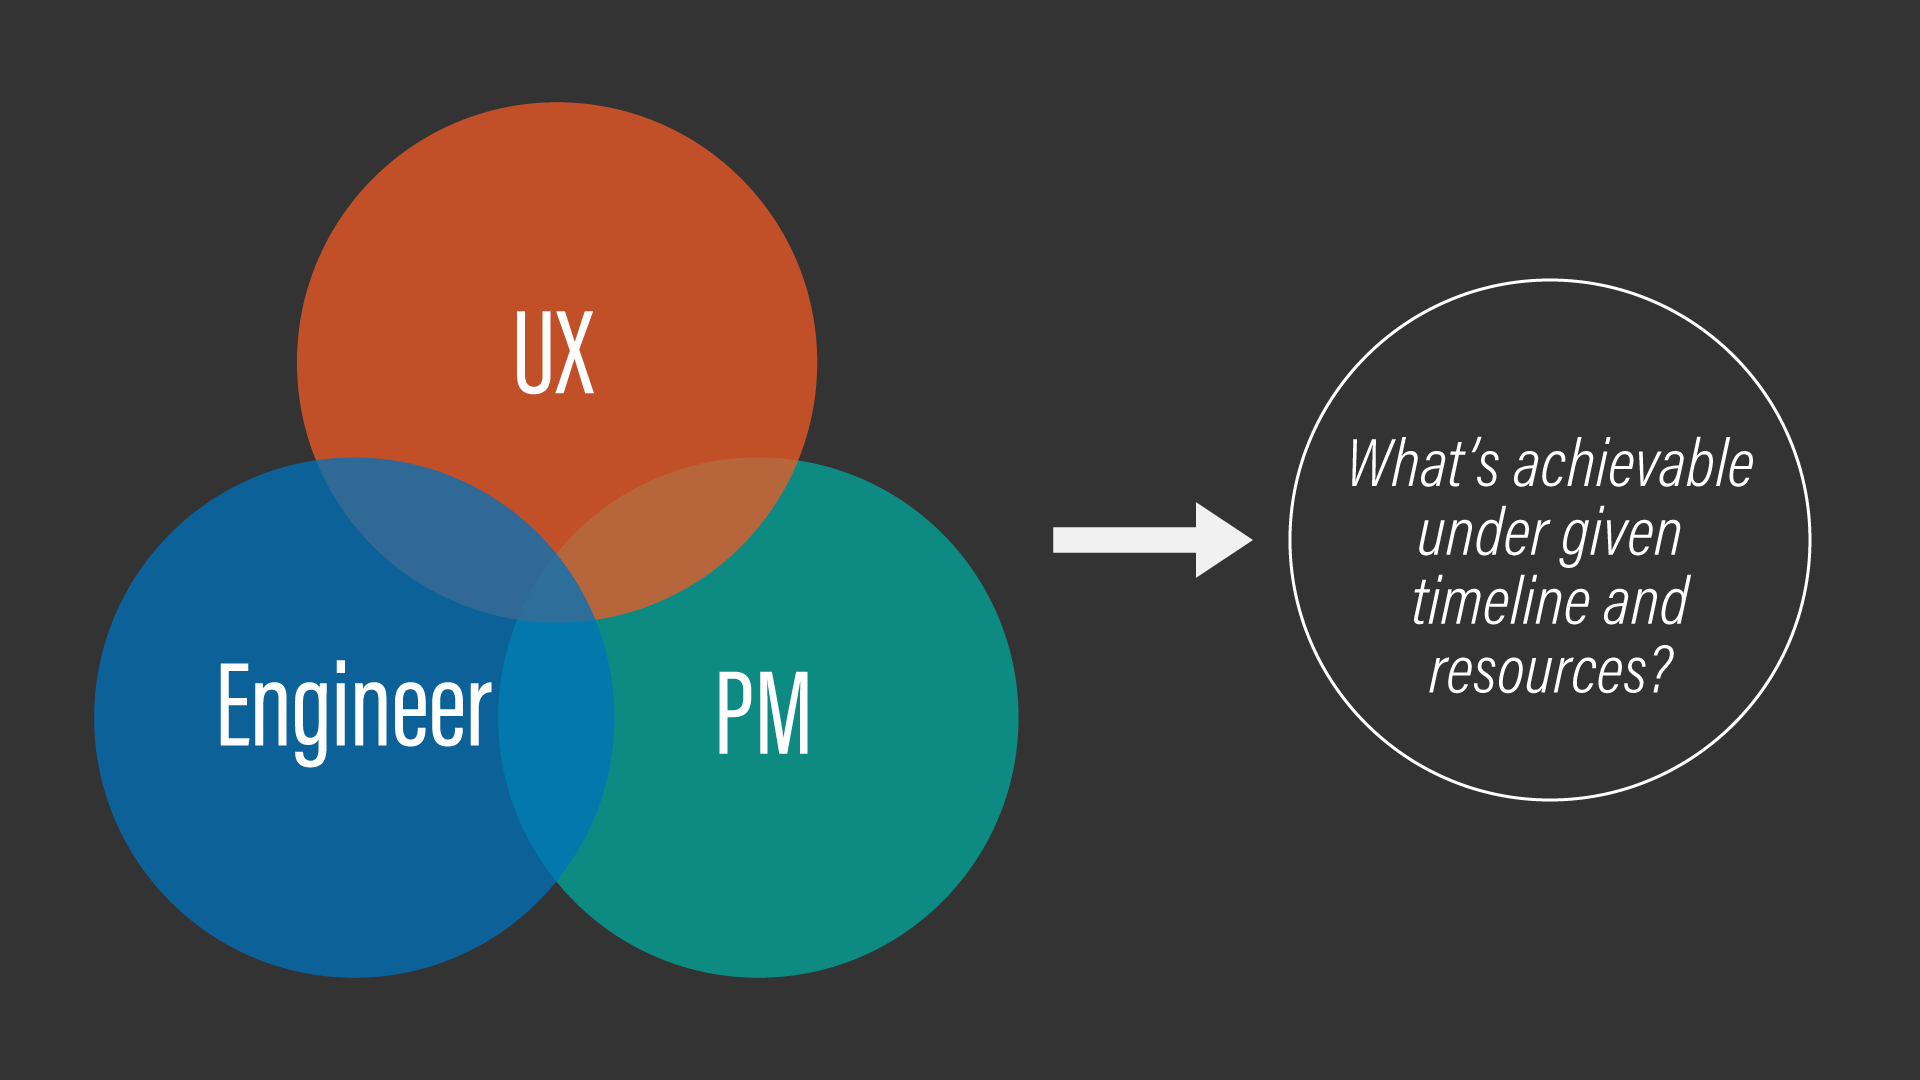 A diagram conceptually showing a criticality of UX/PM/engineer collaboration.